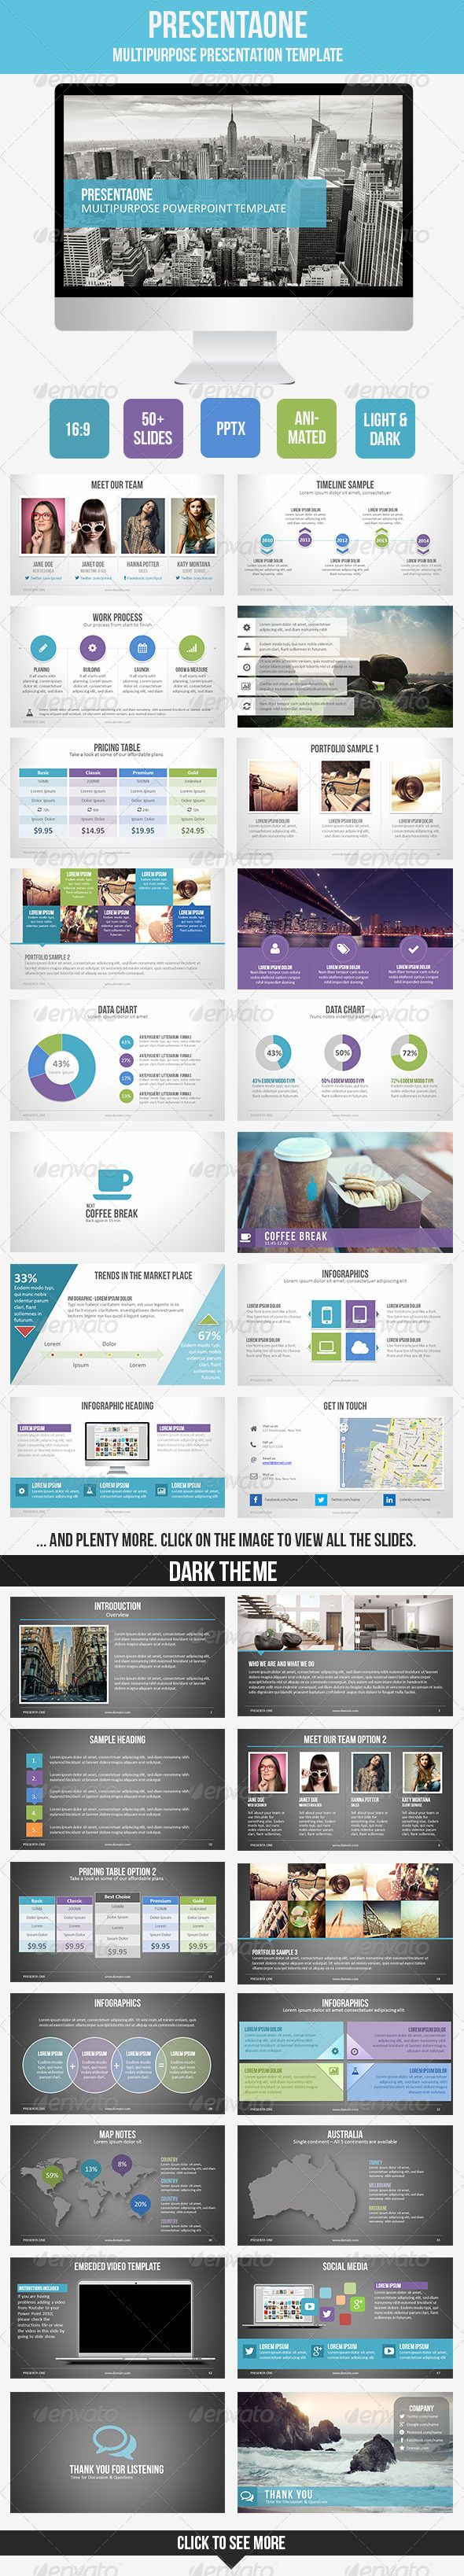 PresentaOne Multipurpose PowerPoint Template. Get it here: http://goo.gl/SjvasW